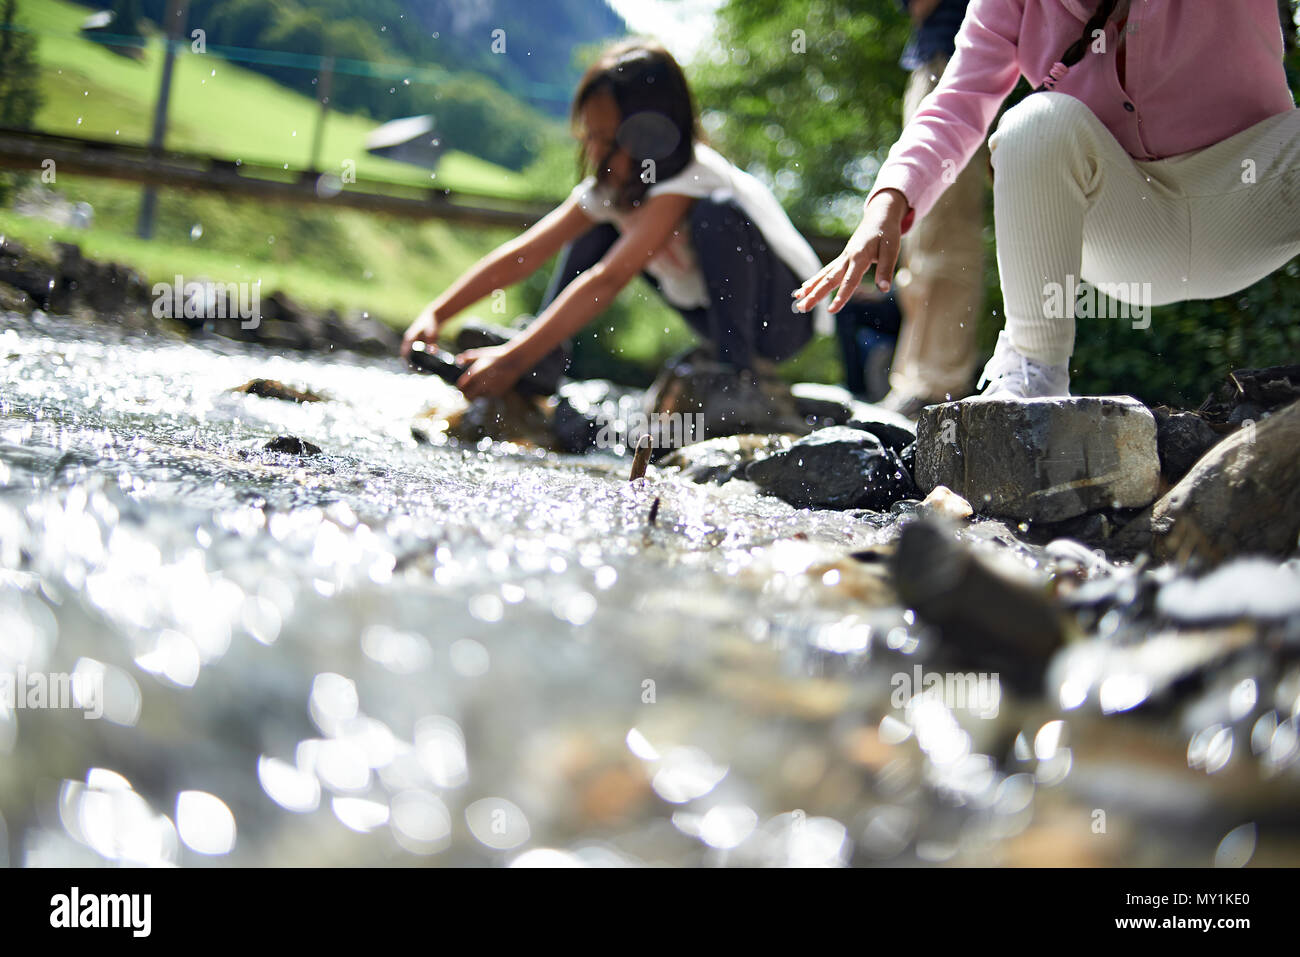 Two cute young girls playing together along a river stream high up in the Swiss mountains during a summer holliday in sunshine - Stock Image